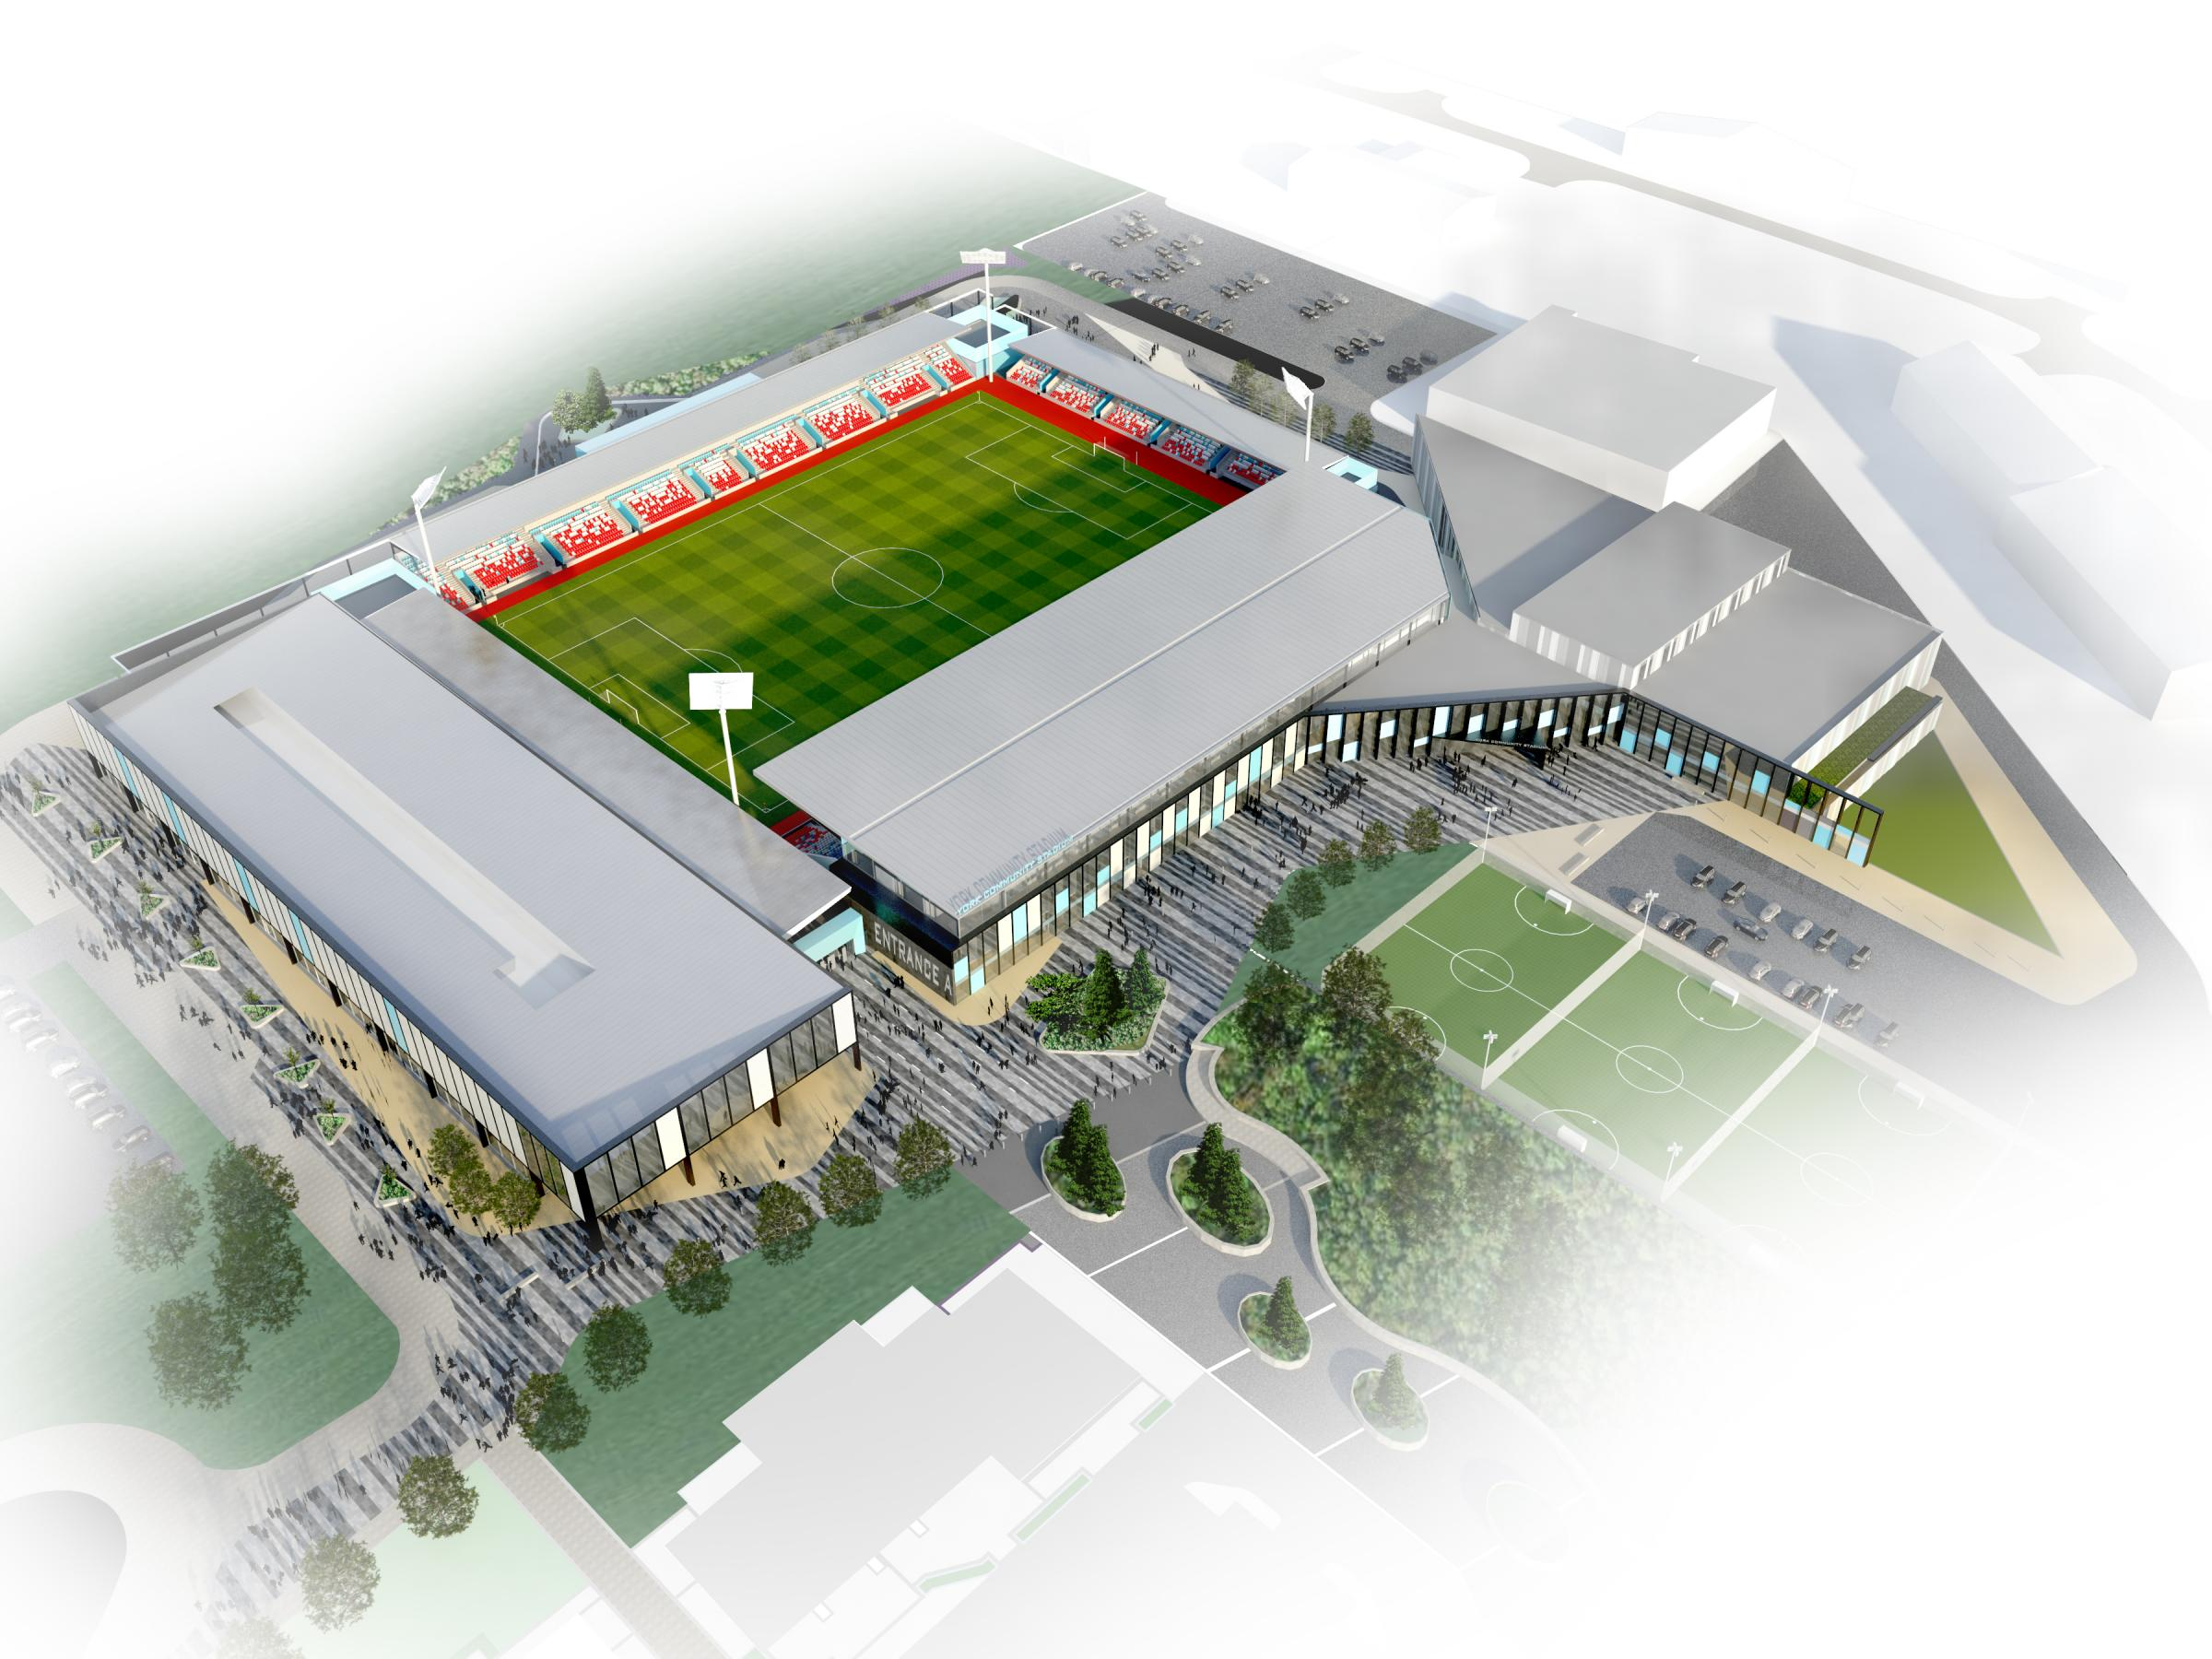 Community stadium package to cost £37m